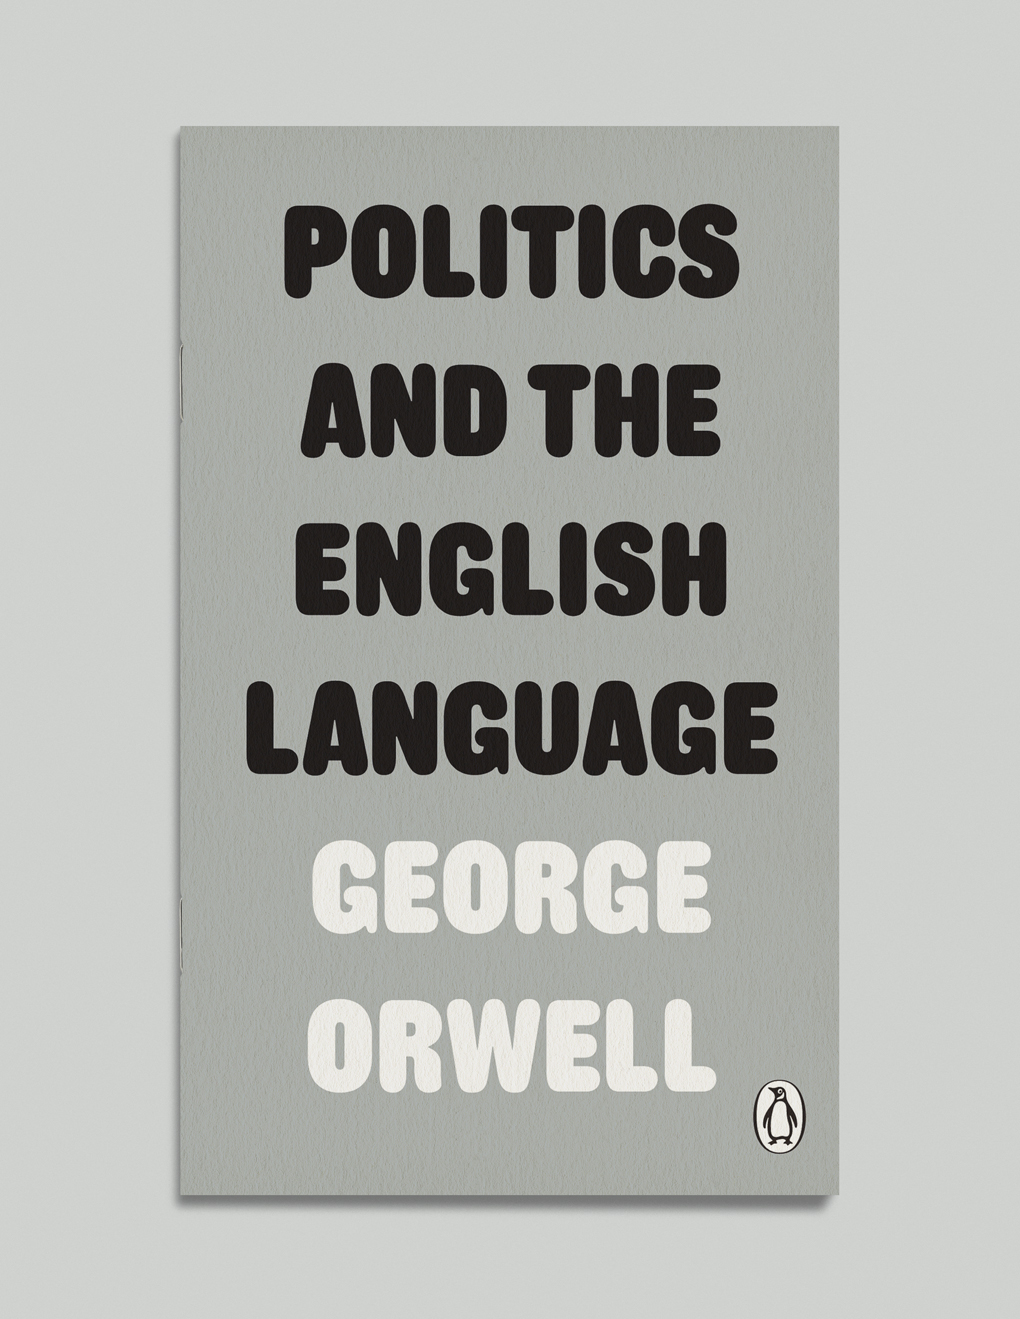 politics and the english language orwell thesis Politics and the english language essay george-orwell-support-linguisitic-determinism/ george orwell, politics and the english language, 1946.